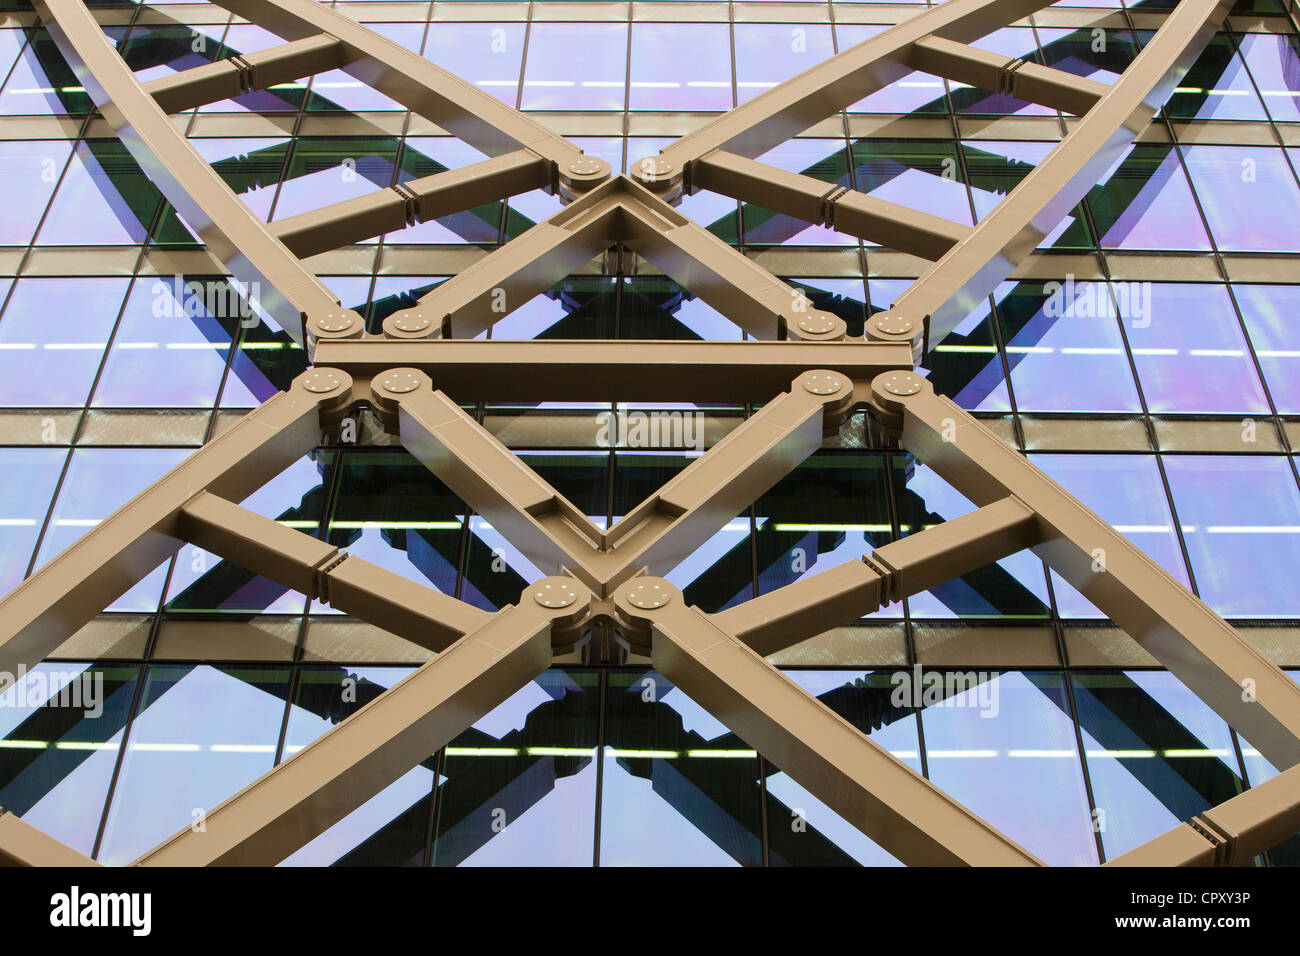 The exterior of Cannon Bridge House in London, UK. - Stock Image